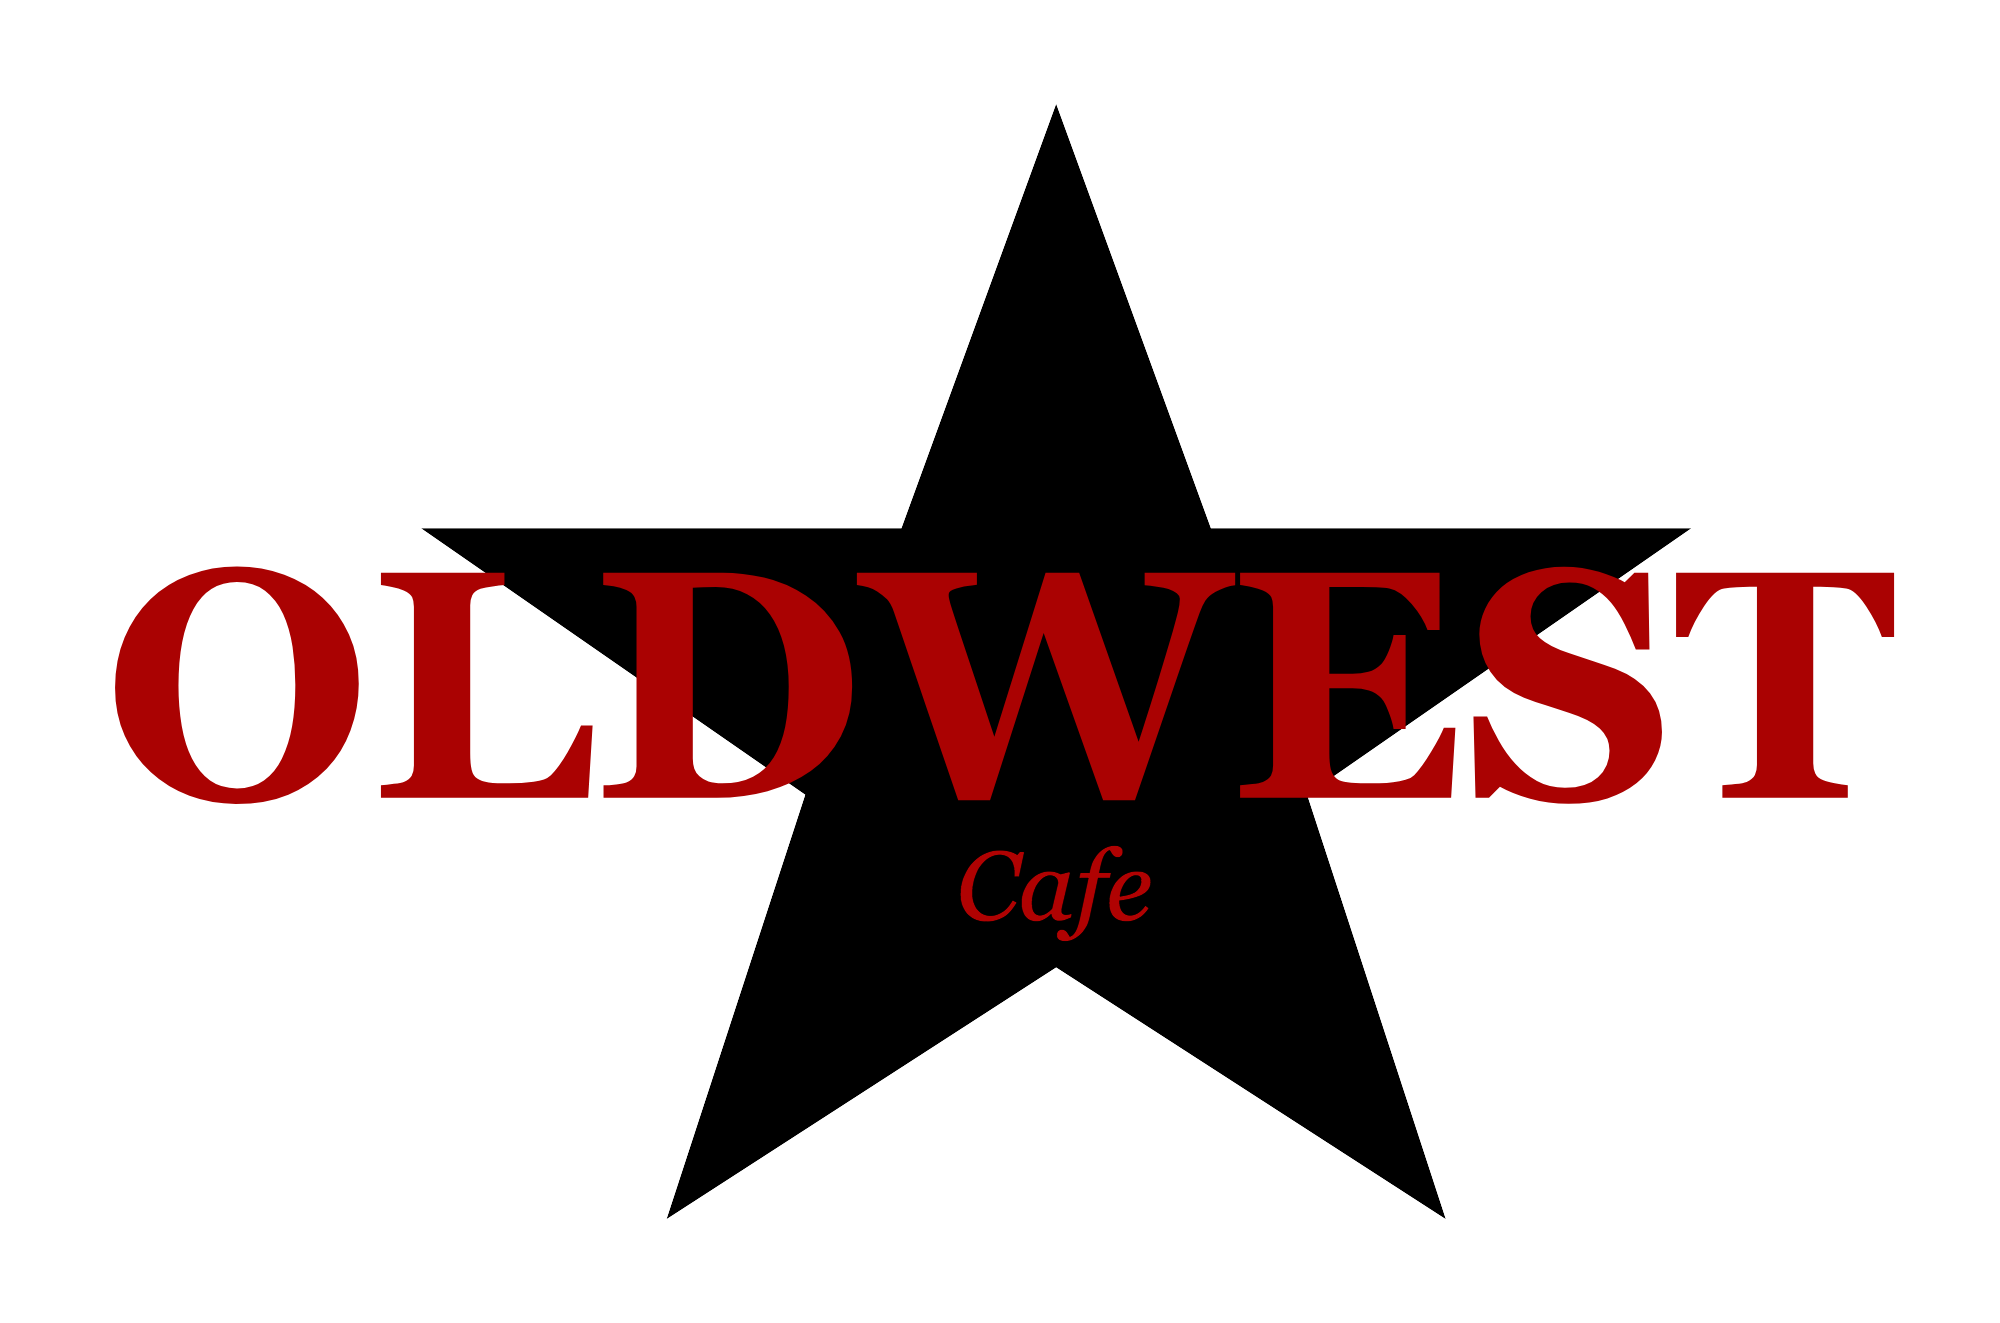 OLDWEST-logo (4).png